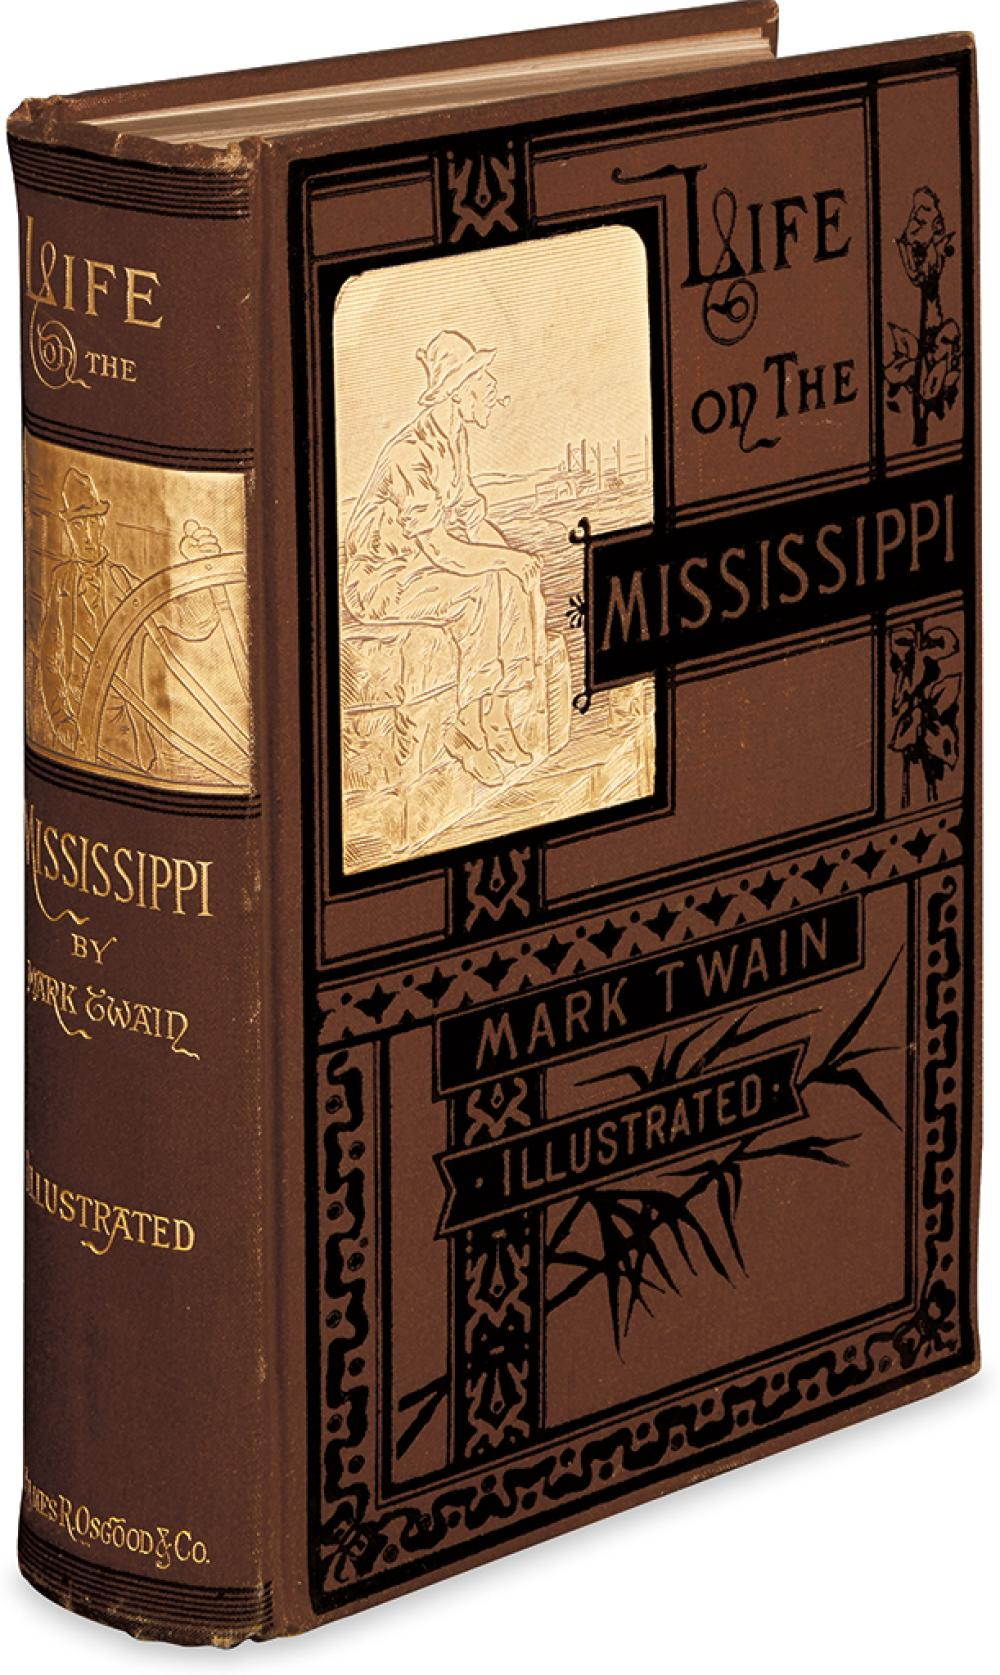 an overview of the life on the mississippi by mark twain Life on the mississippi, complete by mark twain (samuel clemens) 2 the 'body of the nation' but the basin of the mississippi is the body of the nation all the.